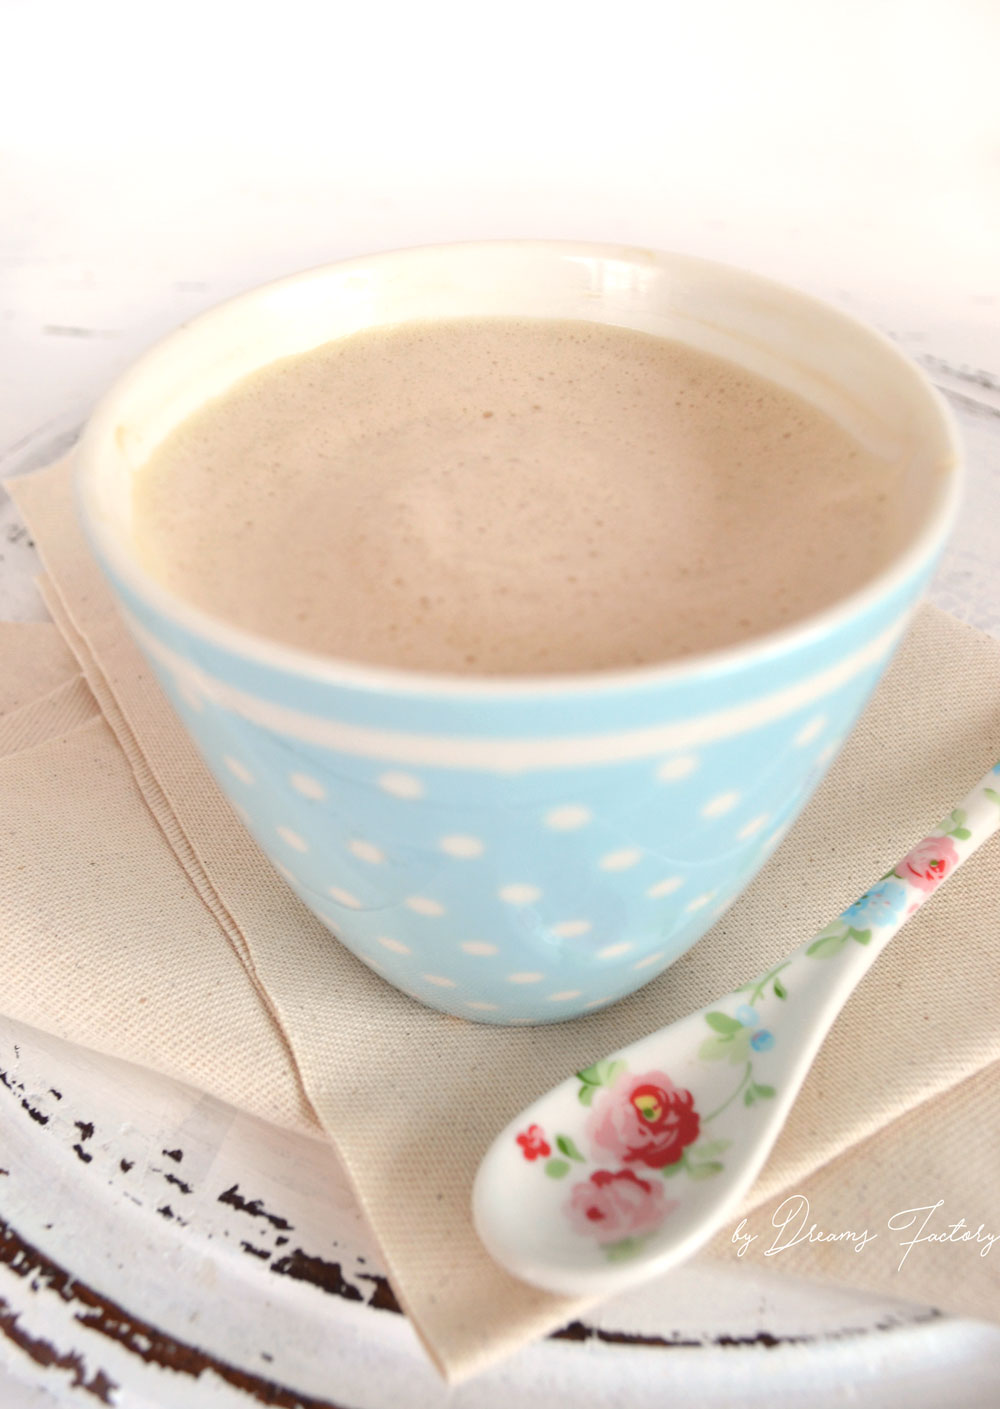 Creamy & foamy coconut oil coffee